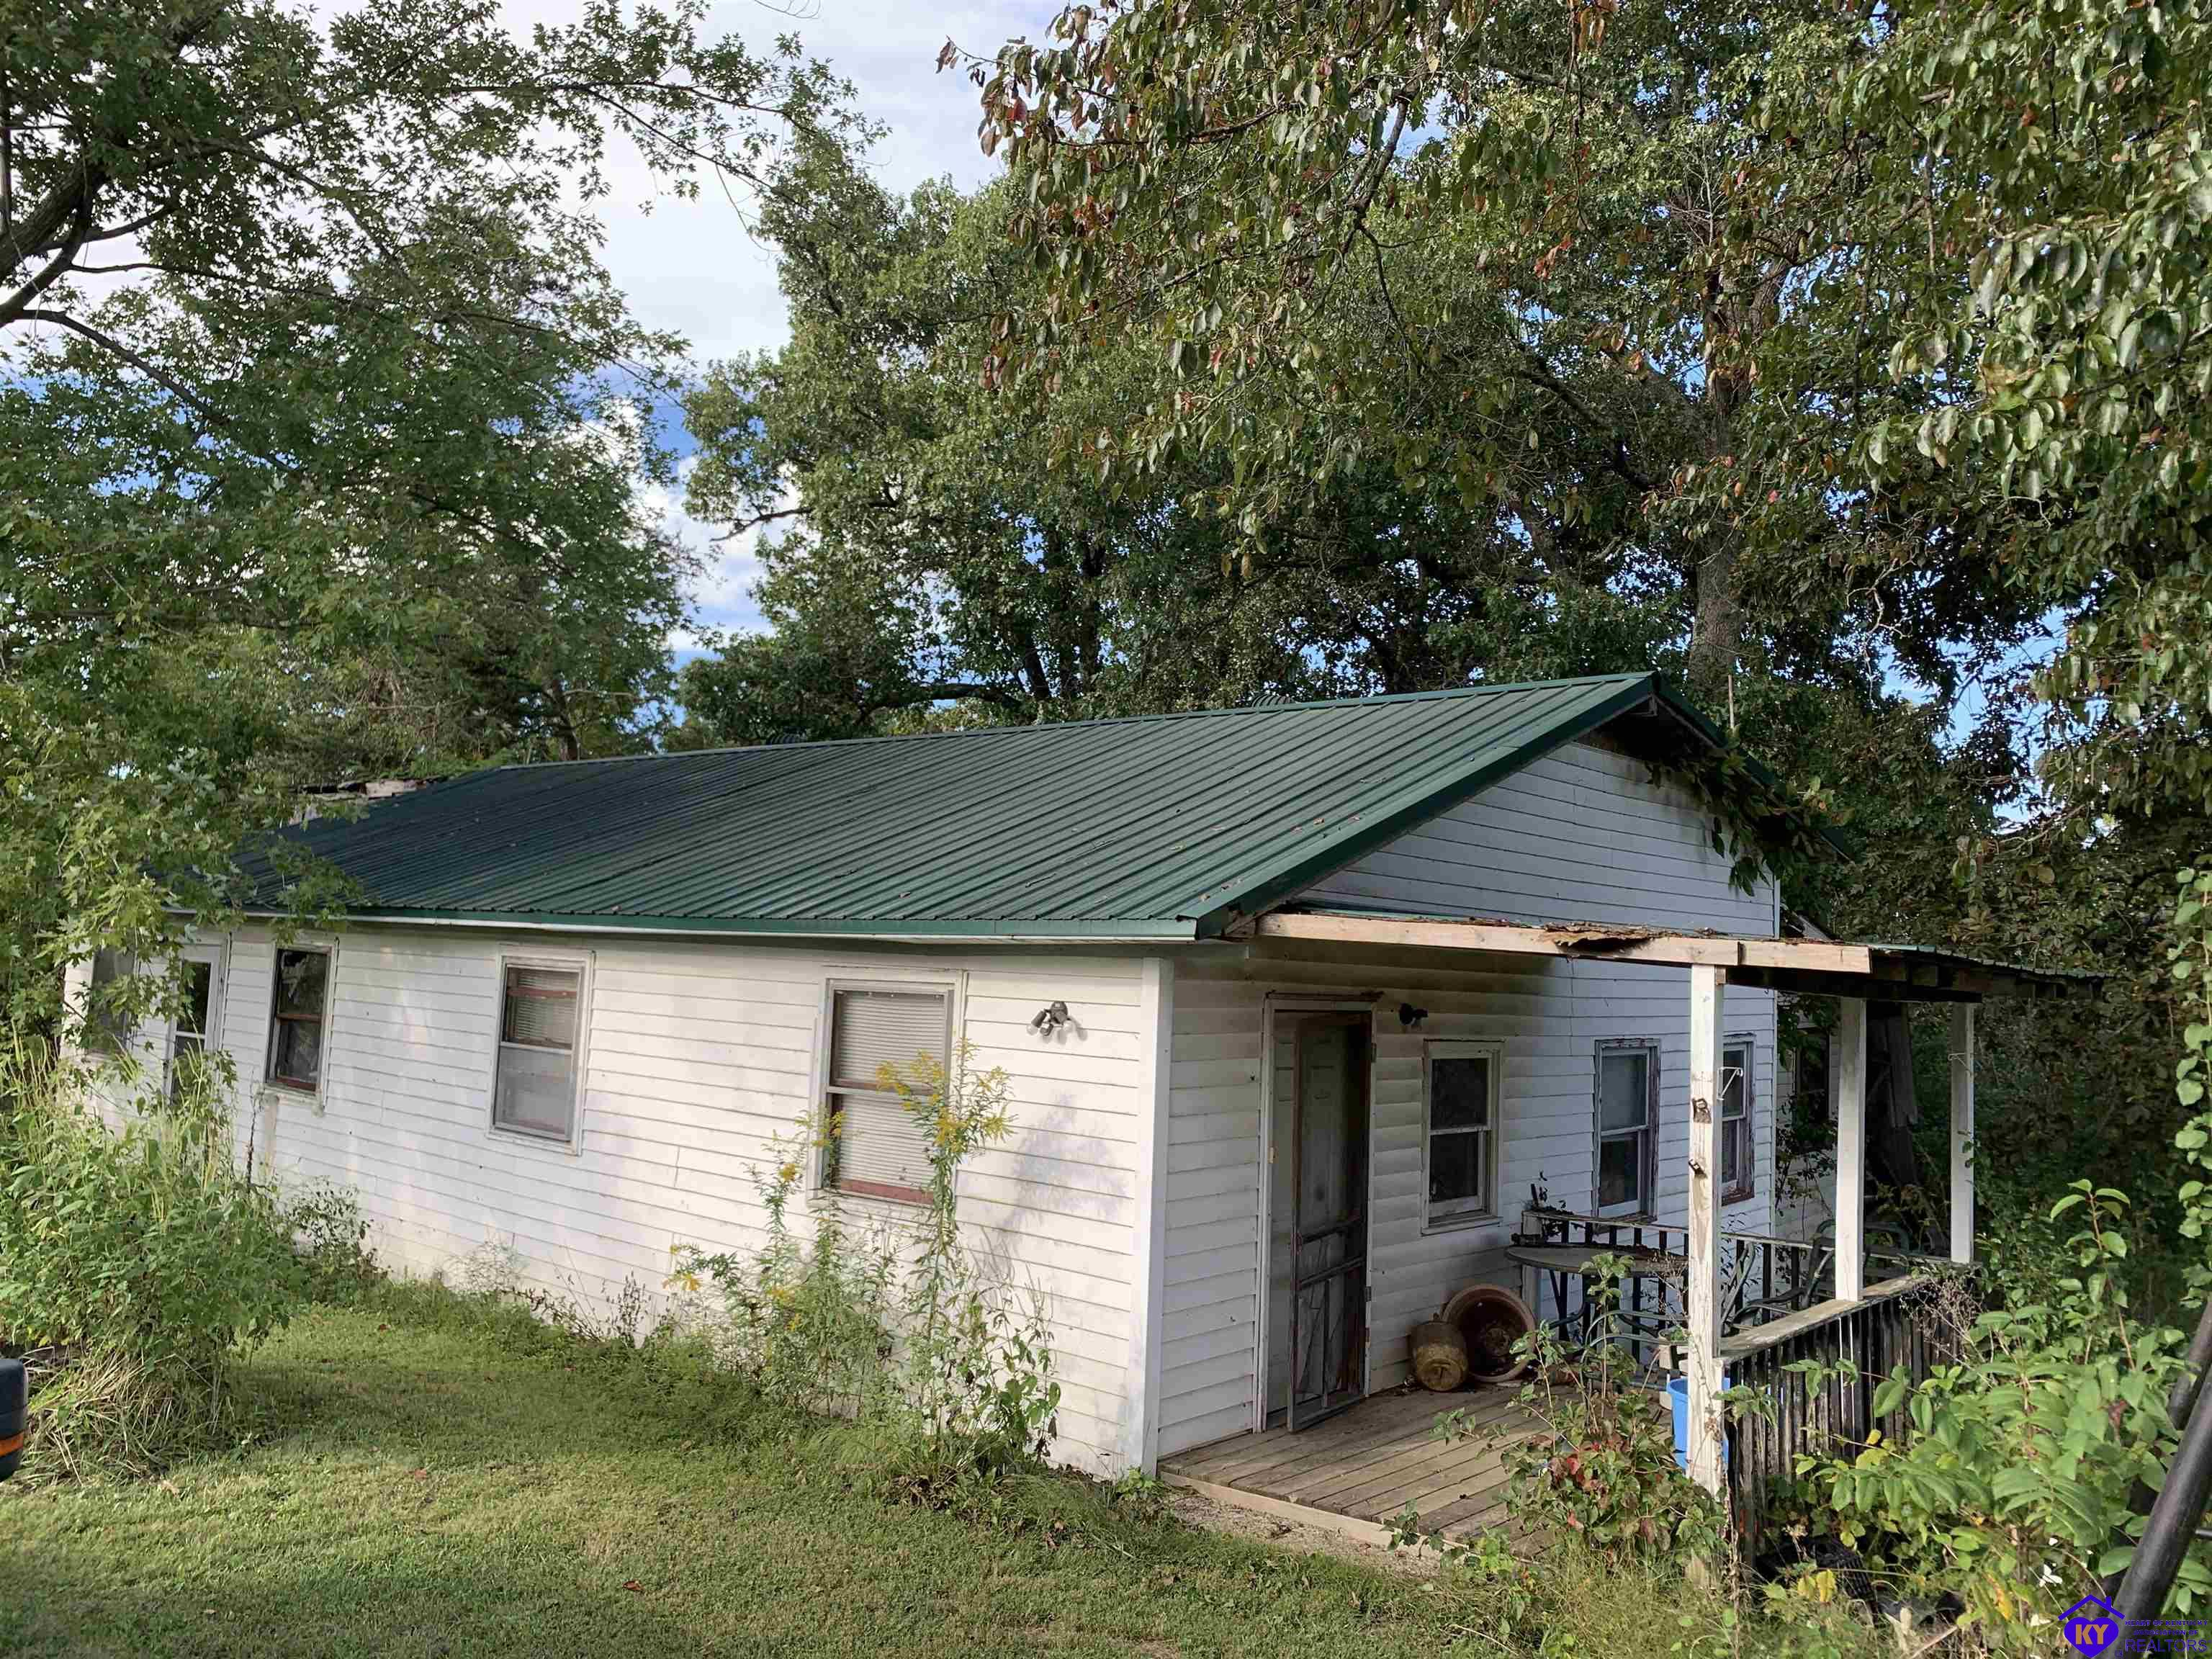 INVESTORS! Here is your opportunity to snag a 2,400+ sq foot ranch, on over 3.5 acres for less than $16.60 a square foot! This home has city water, septic and is almost 75% fenced, perfect for a flip. Take a look today!!